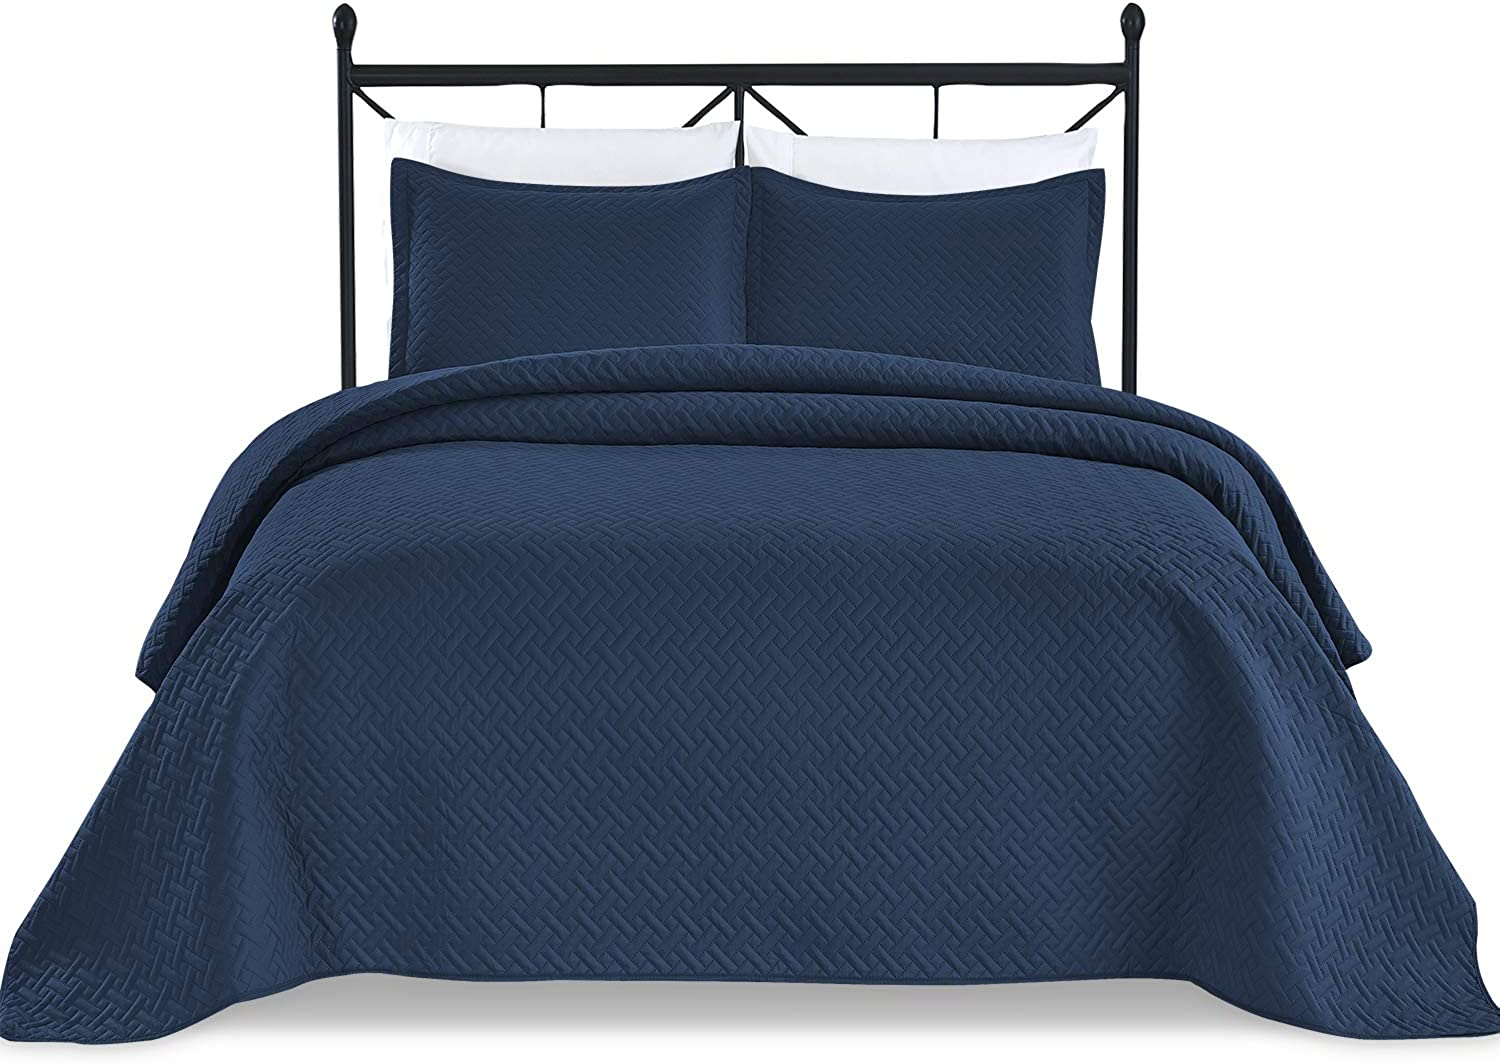 Basic Choice 3-Piece Light Weight Oversize Quilted Bedspread Coverlet Set - Navy bluee, King California King